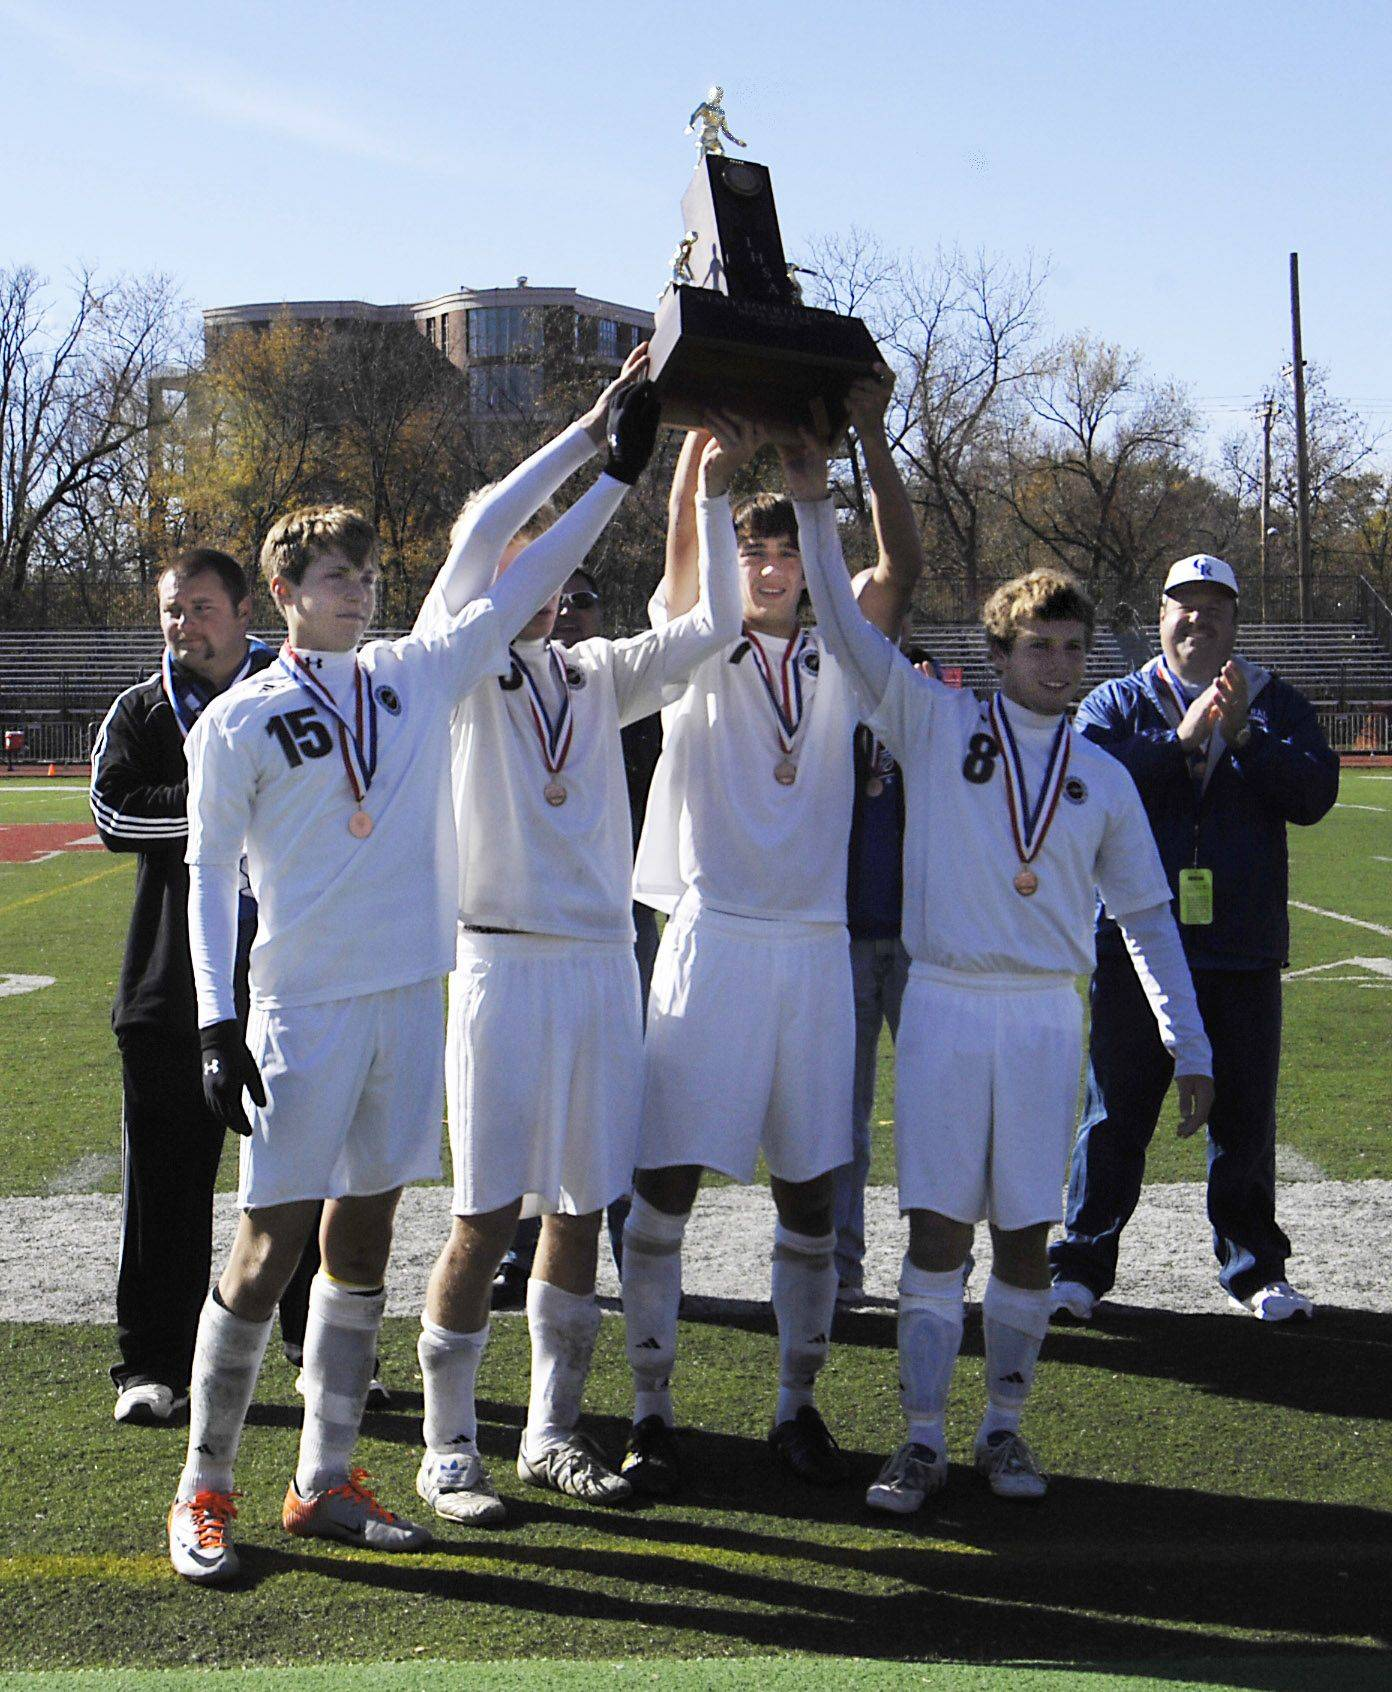 Burlington Central captains Bryce Warner, Zachary Jochum, Kyle Reopelle and Christopher Gousios hold the fourth place trophy in the state tournament in Naperville Saturday.